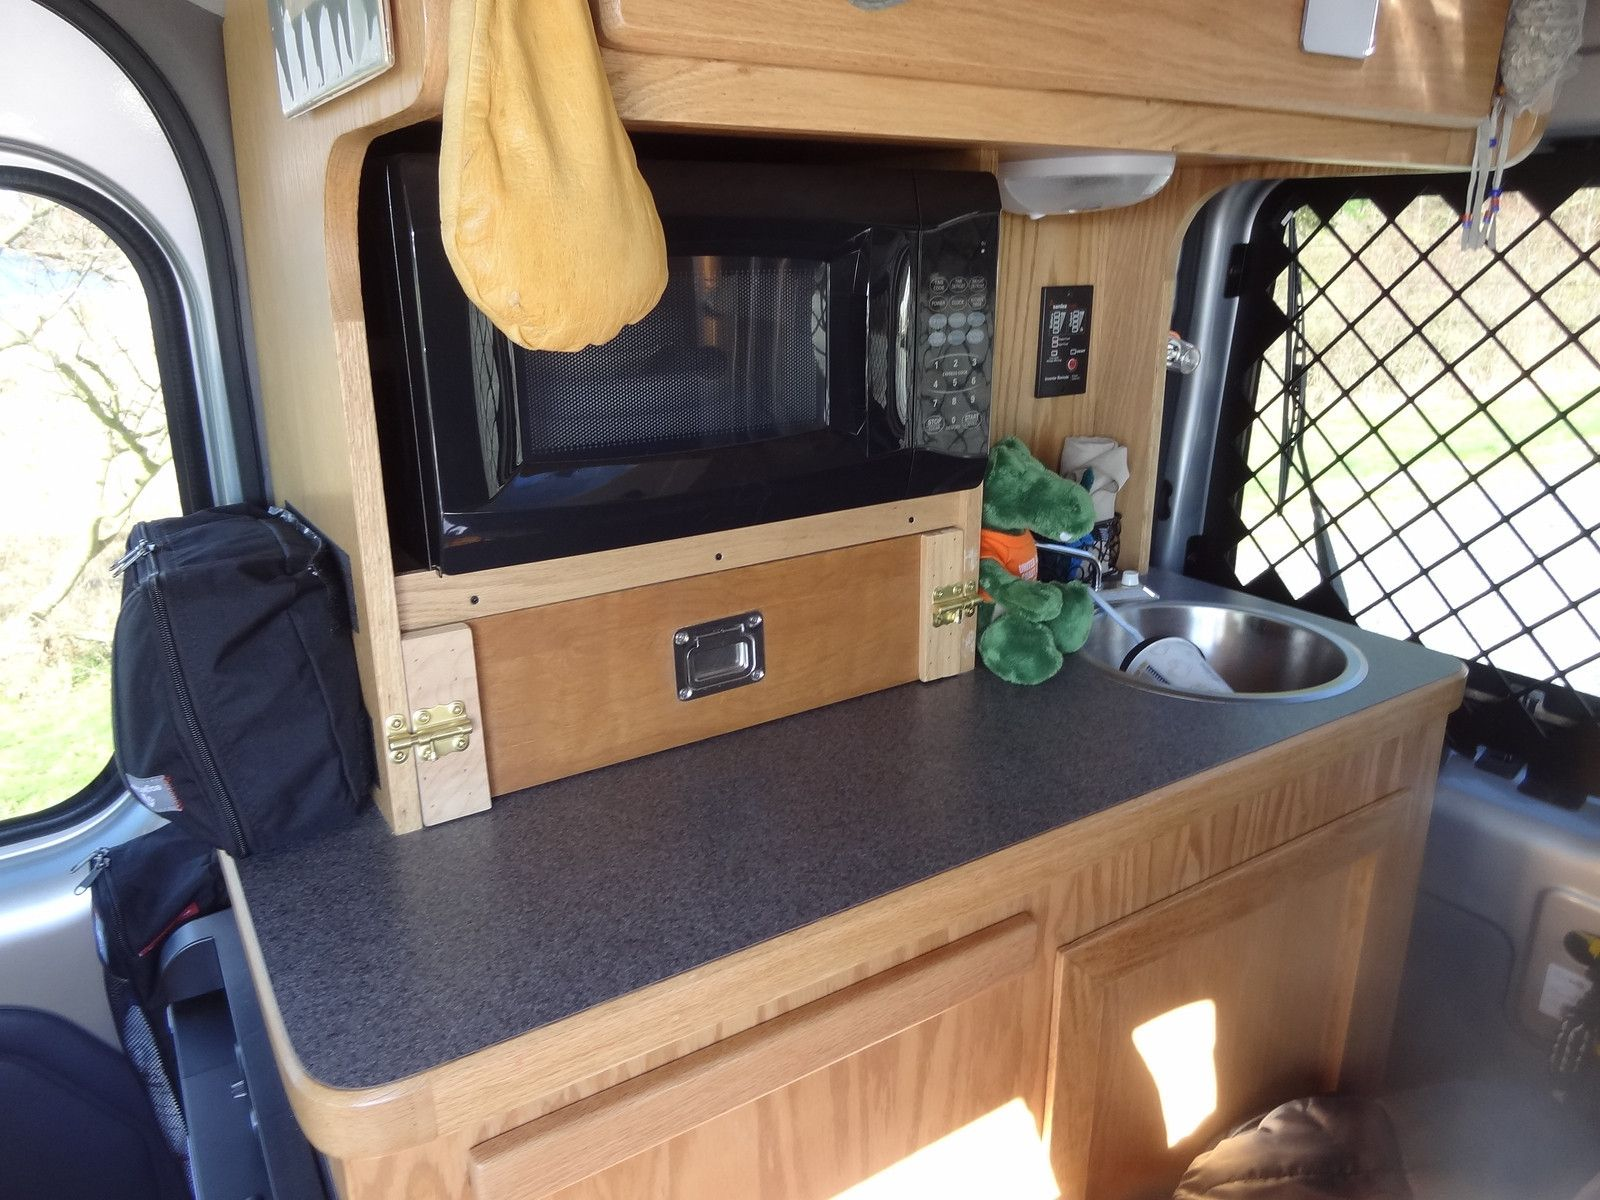 Ford transit connect camper conversion like the pull out table in the sideboard